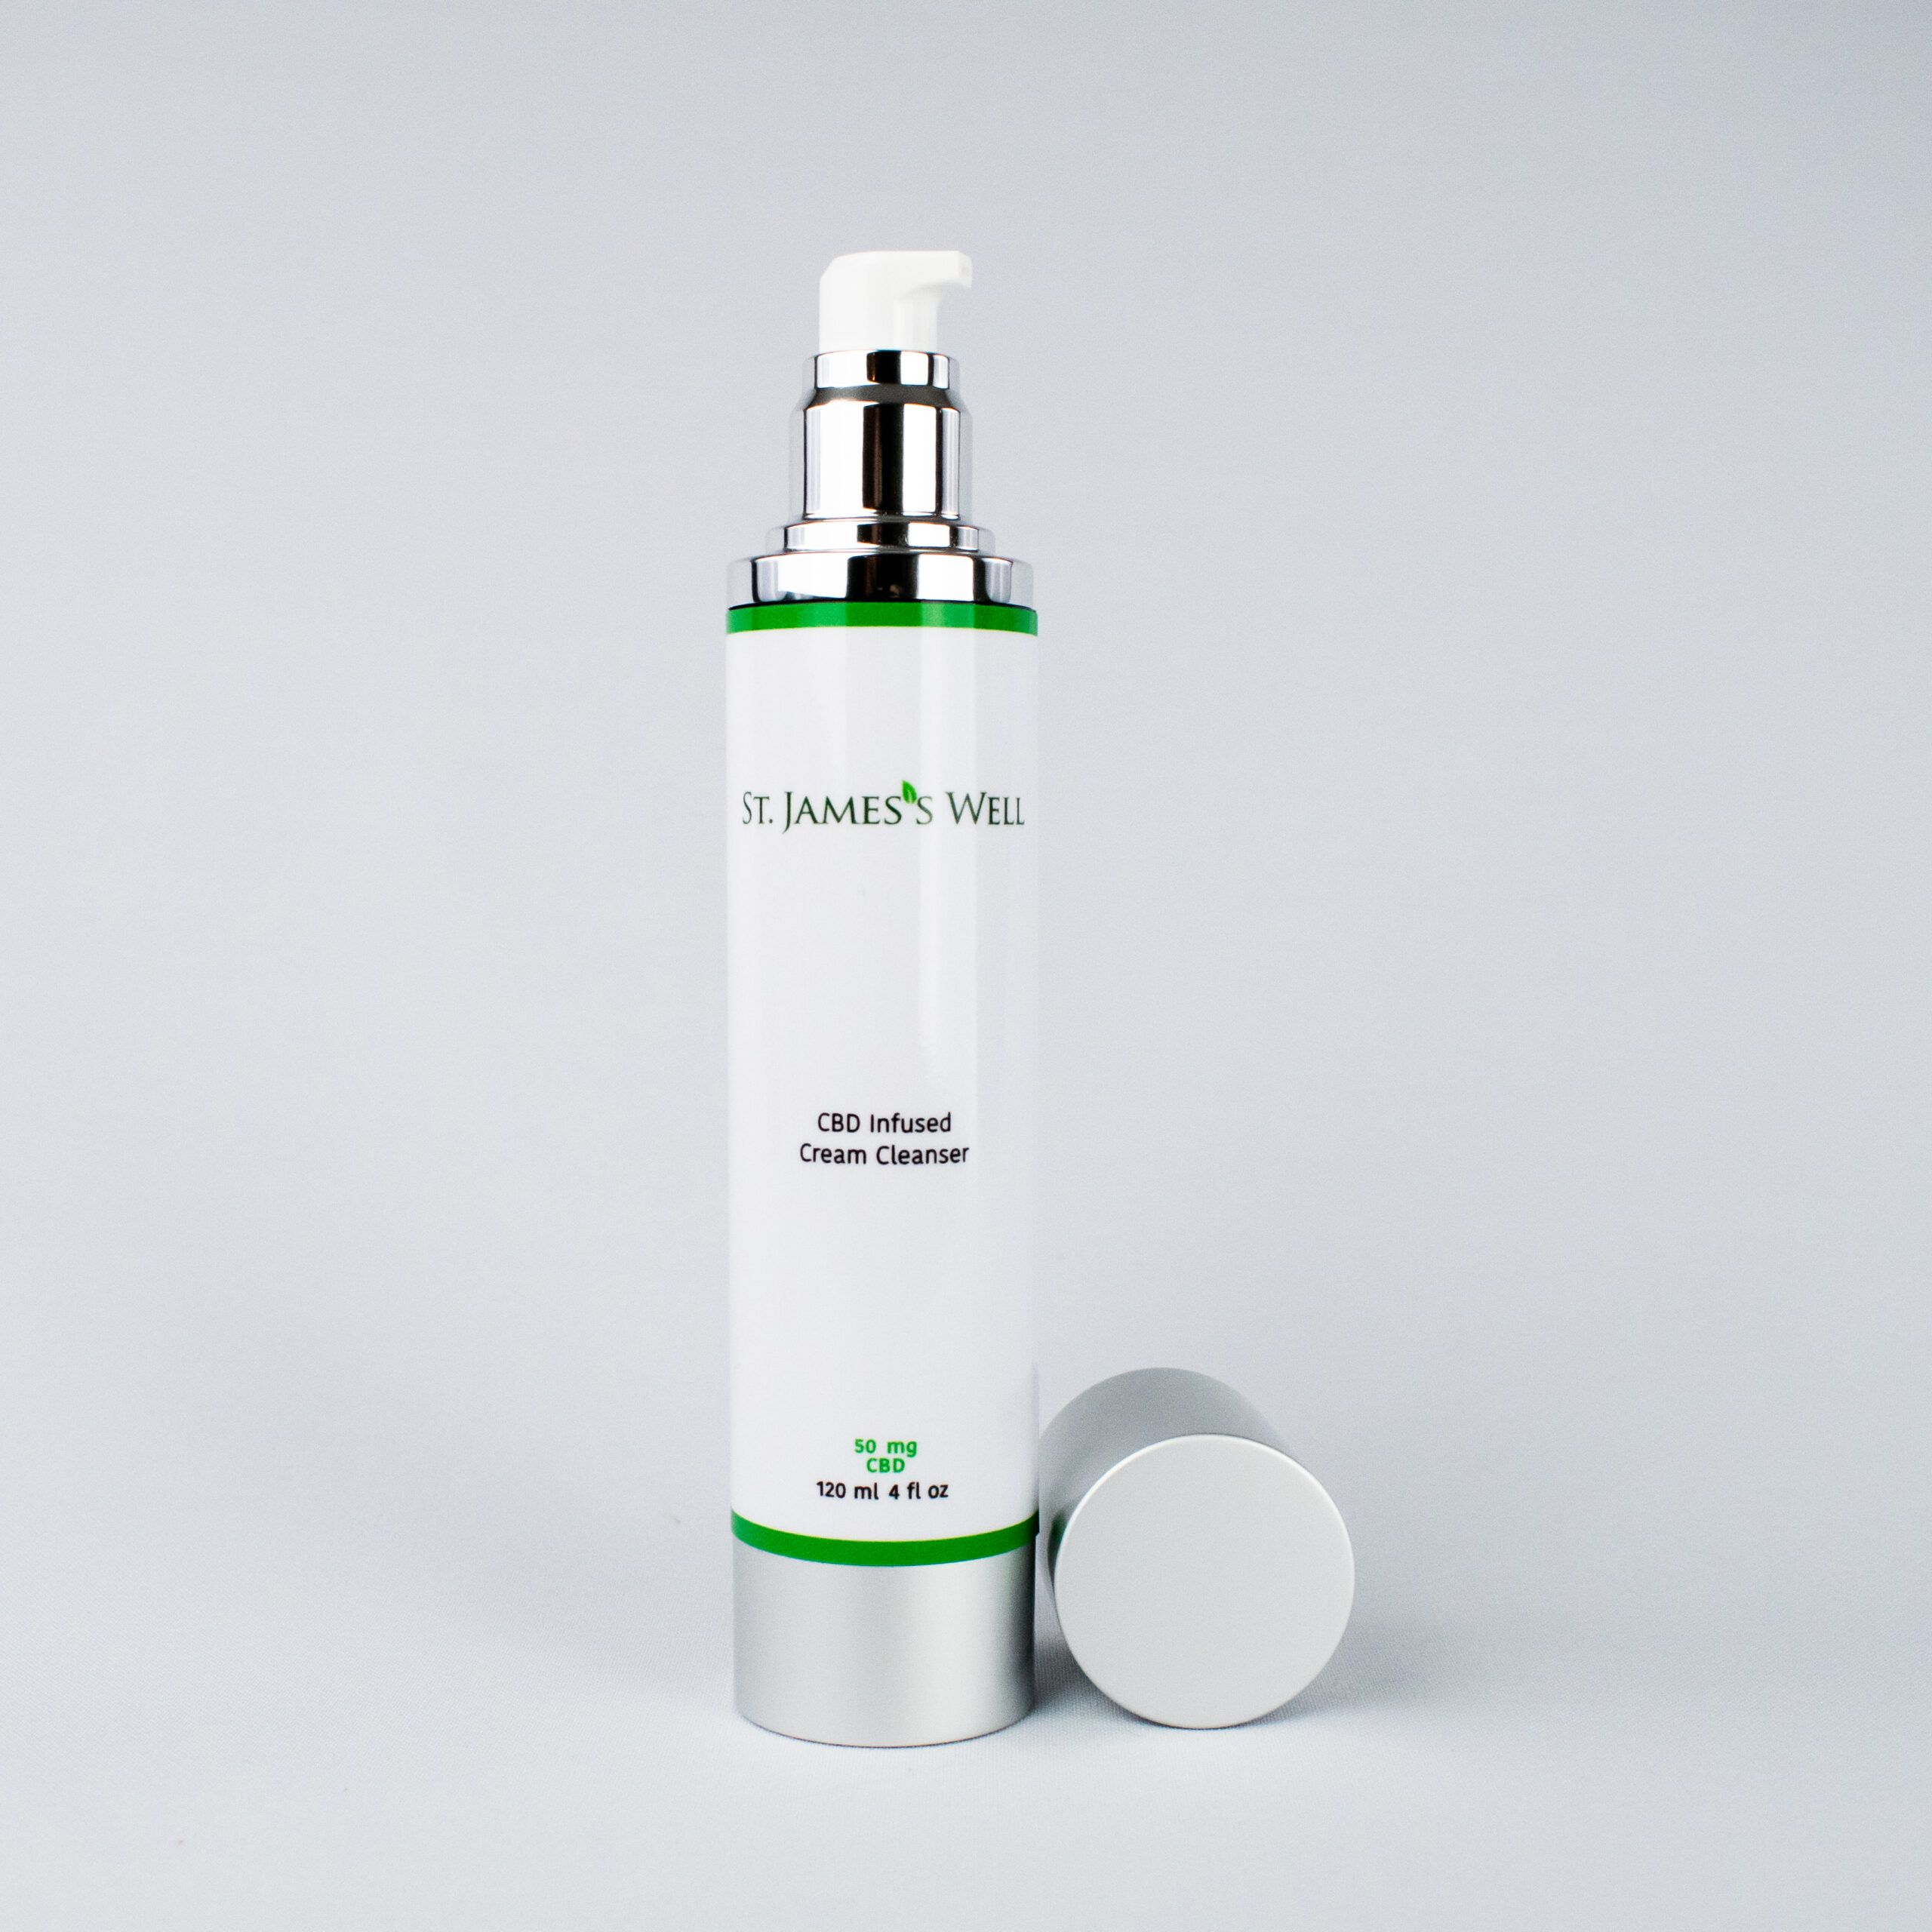 St. James's Well CBD Infused Cream Cleanser